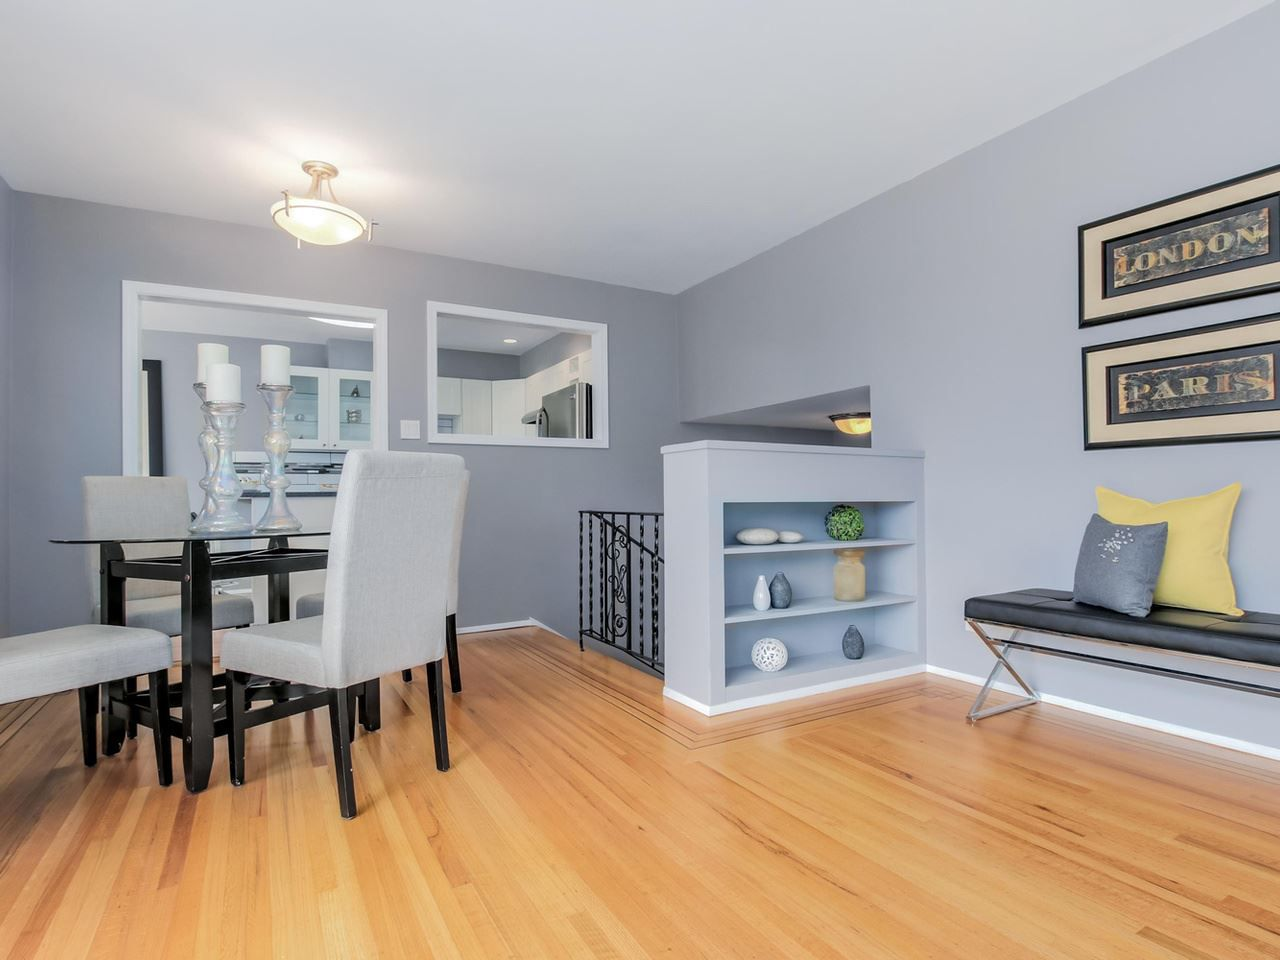 Photo 10: Photos: 1014 CALVERHALL Street in North Vancouver: Calverhall House for sale : MLS®# R2090205